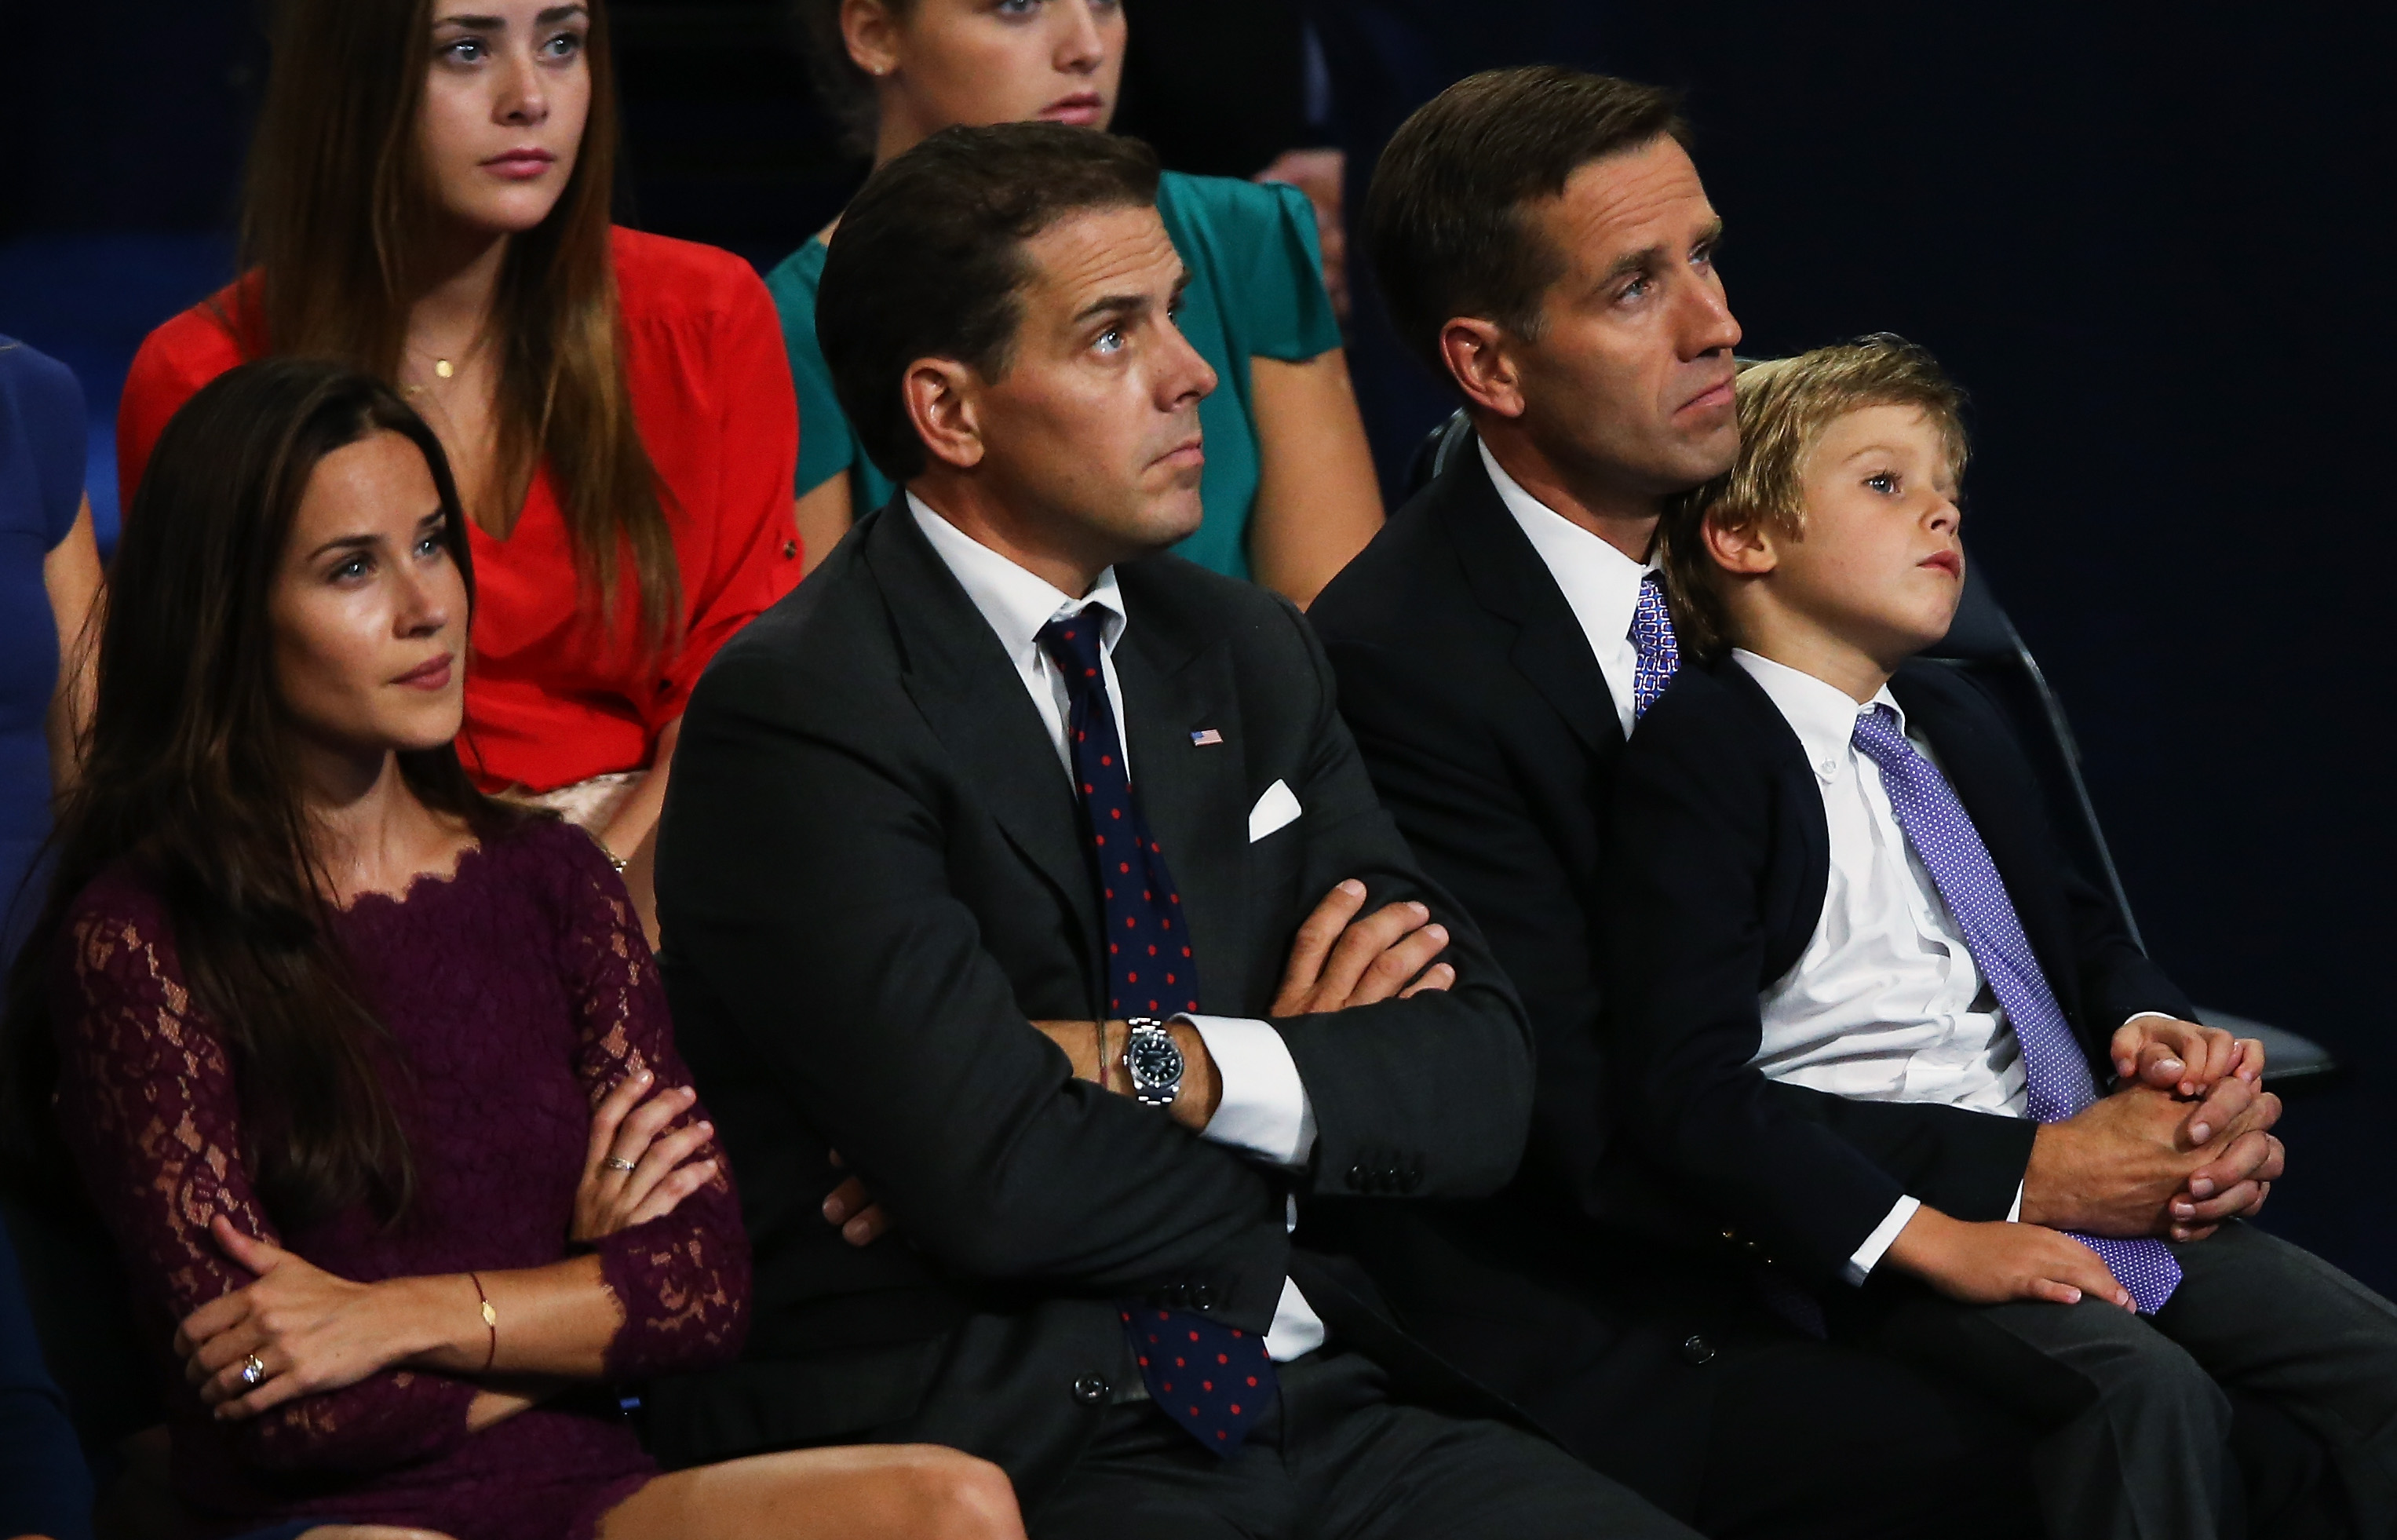 CHARLOTTE, NC - SEPTEMBER 06: (R-L) Attorney General of Delaware Beau Biden, Hunter Biden, and Ashley Biden, watch their father Democratic vice presidential candidate, U.S. Vice President Joe Biden speaks on stage during the final day of the Democratic National Convention at Time Warner Cable Arena on September 6, 2012 in Charlotte, North Carolina. The DNC, which concludes today, nominated U.S. President Barack Obama as the Democratic presidential candidate. (Photo by Streeter Lecka/Getty Images)